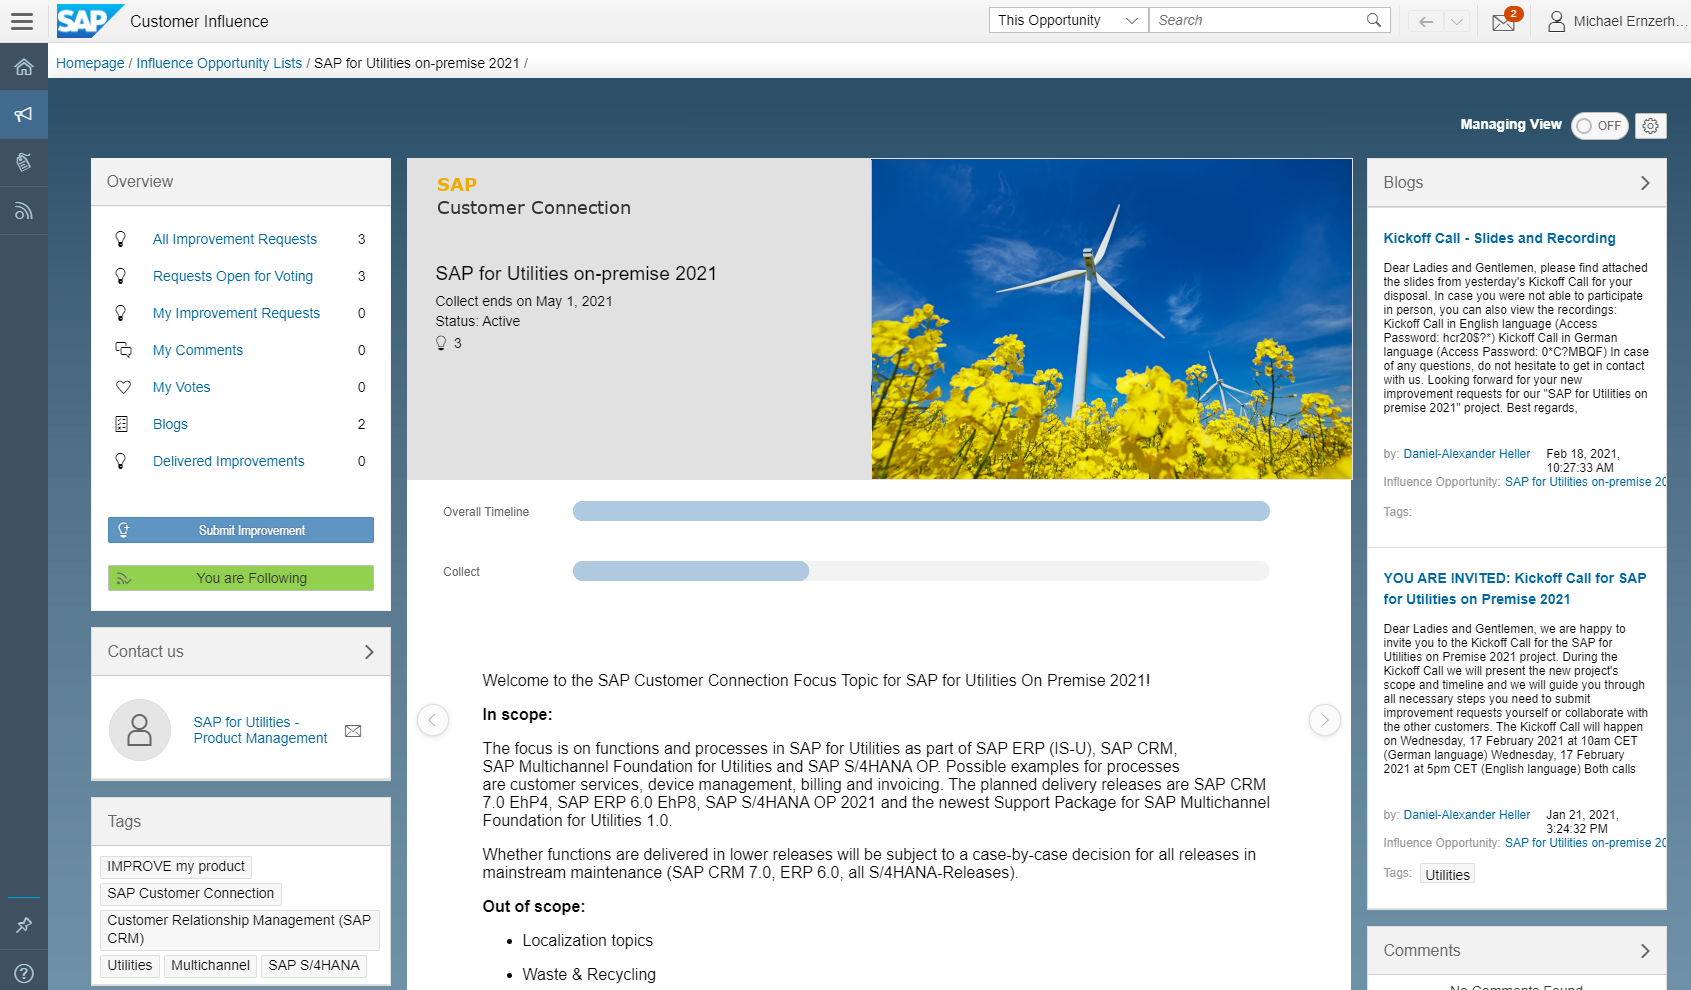 Landing%20page%20of%20Customer%20Connection%20project%20SAP%20for%20Utilities%20on-premise%202021